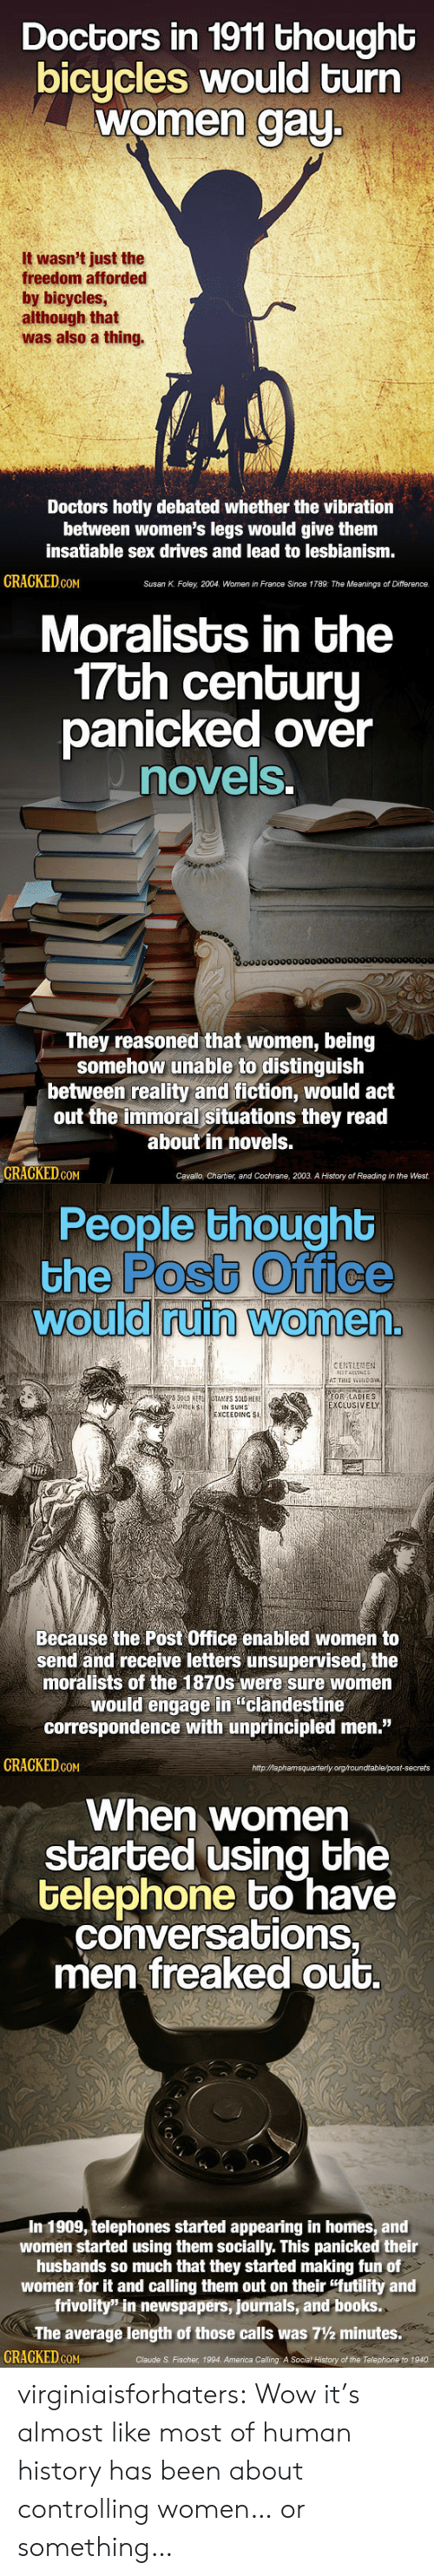 "America, Books, and Post Office: Doctors in 1911 thought  bicycles would turn  women aU  It wasn't just the  freedom afforded  by bicycles  although that  was also a thing.  Doctors hotly debated whether the vibration  between women's legs would give them  insatiable sex drives and lead to lesbianism  GRAGKED GoM  Susan K. Foley, 2004, Women in France Since 1789: The Meanings of Difference.   Moralists in the  7Gh cenGuru  panicked over  novels  0o000000000  They reasoned that women, being  somehow unable to distinguish  between reality and fiction, would act  out the immoral situations they read  about in novels.  GRAGKED.GOM  Cavallo, Chartier, and Cochrane, 2003. A History of Reading in the West.   People thoughb  the Postb Office  would ruin Women  0  0  CENTLEMENl  FOR LADIES  XCLUSİVELY  SUNDER S  IN SUMS  EXCEEDING SI  Becausé the Post Office enabled women to  send and receive letters unsupervised, the  moralists of the 1870s were sure women  would engage in ""clandestine  correspondence with unprincipled men.""  GRAGKED coM  httpMaphamsquarterly org/roundtable/post-secrets   When women  started using bhe  telephone bo have  conversations,  men freaked out.  In 1909, telephones started appearing in homes, and  women started using them socially. This panicked their  husbands so much that they started making fun of  women for it and calling them out on their ""futility and  frivolity"" in newspapers, journals, and books.  The average length of those calls was 7½ minutes.  CRACKED cON  Claude S. Fischer, 1994. America Calling: A Social History of the Telephone to 1940 virginiaisforhaters:  Wow it's almost like most of human history has been about controlling women… or something…"